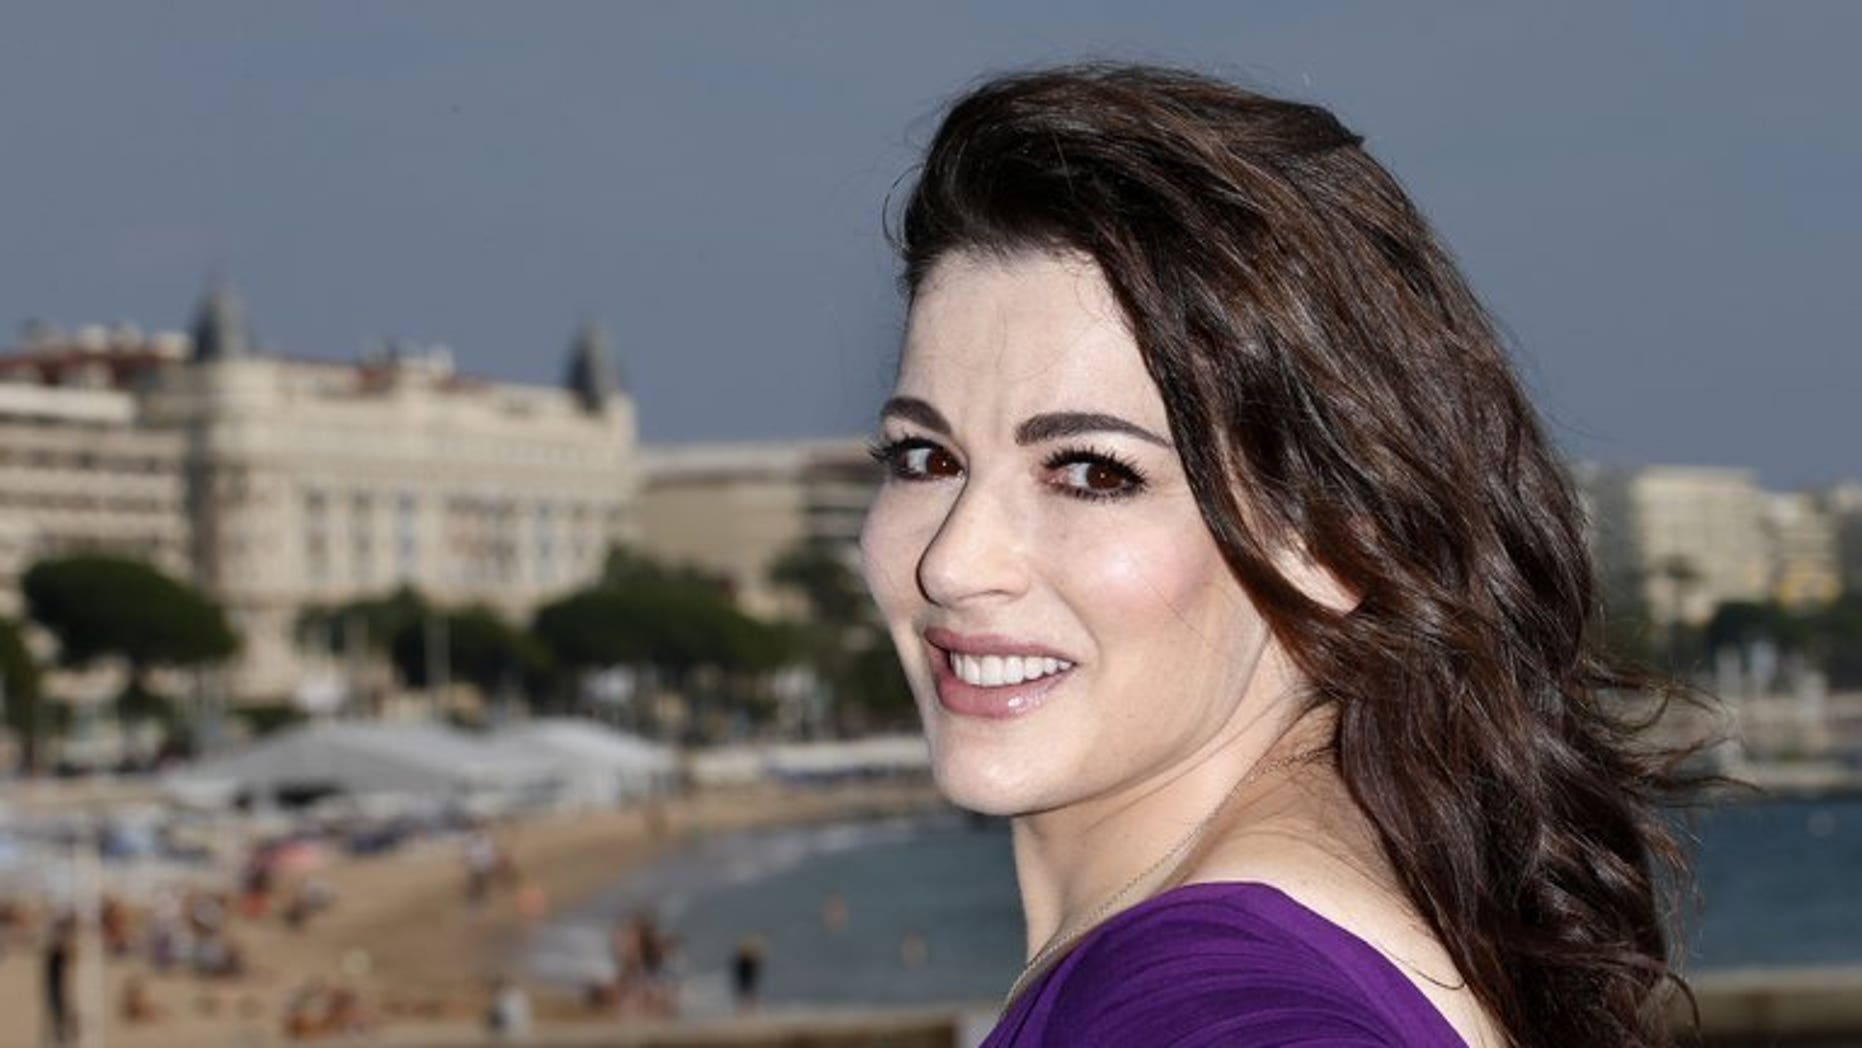 British art collector Charles Saatchi and his celebrity chef wife Nigella Lawson, pictured last year in Cannes, say they will not make any financial claims against each other to ensure a swift divorce.